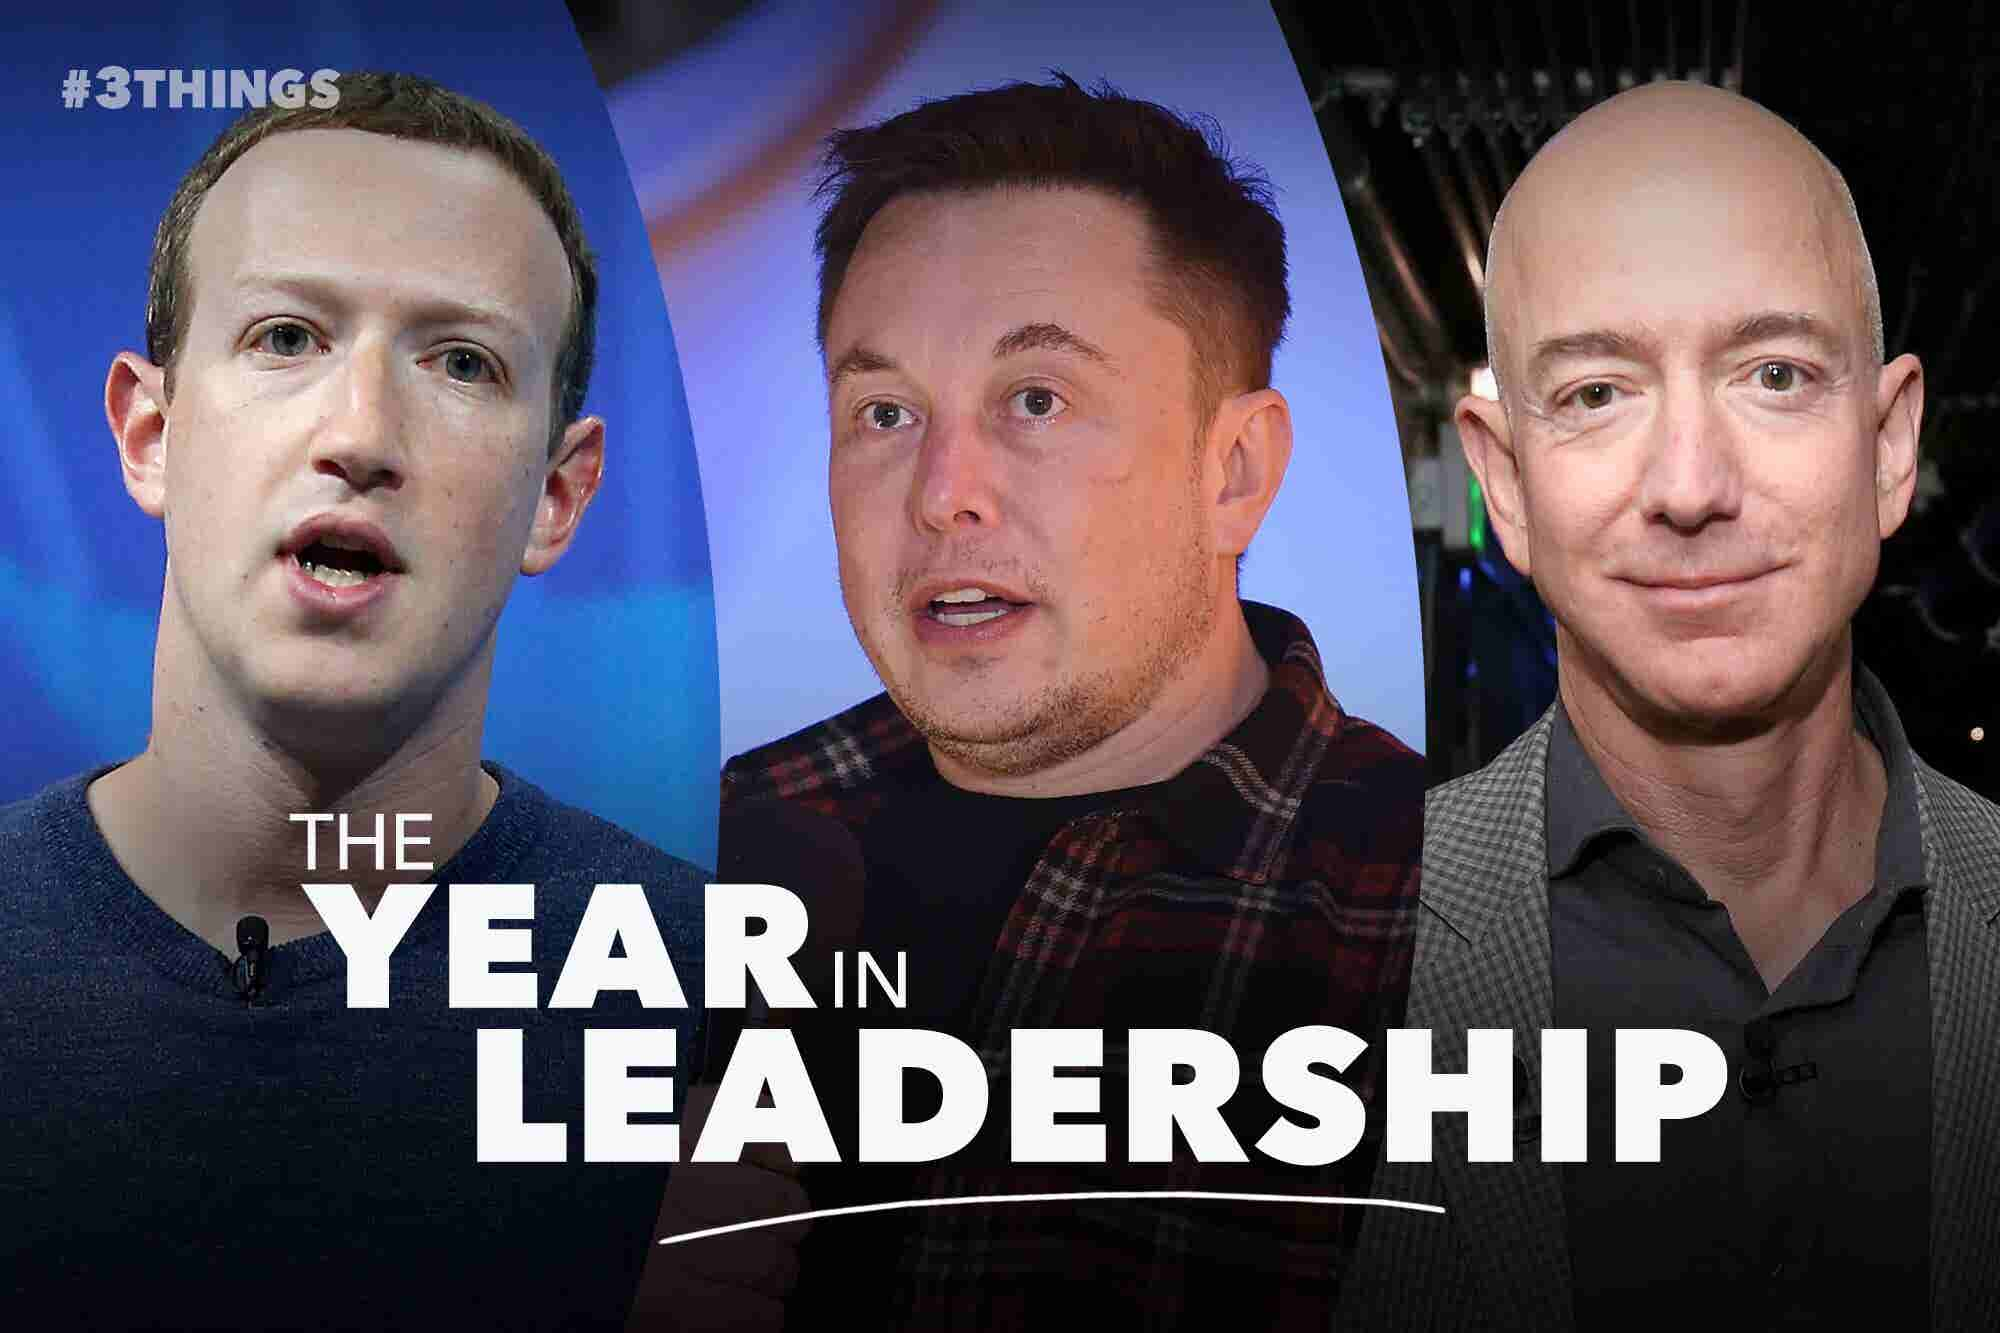 Mark Zuckerberg, Elon Musk and Jeff Bezos: For Each, a Vastly Different 2018 (60 Second Video)